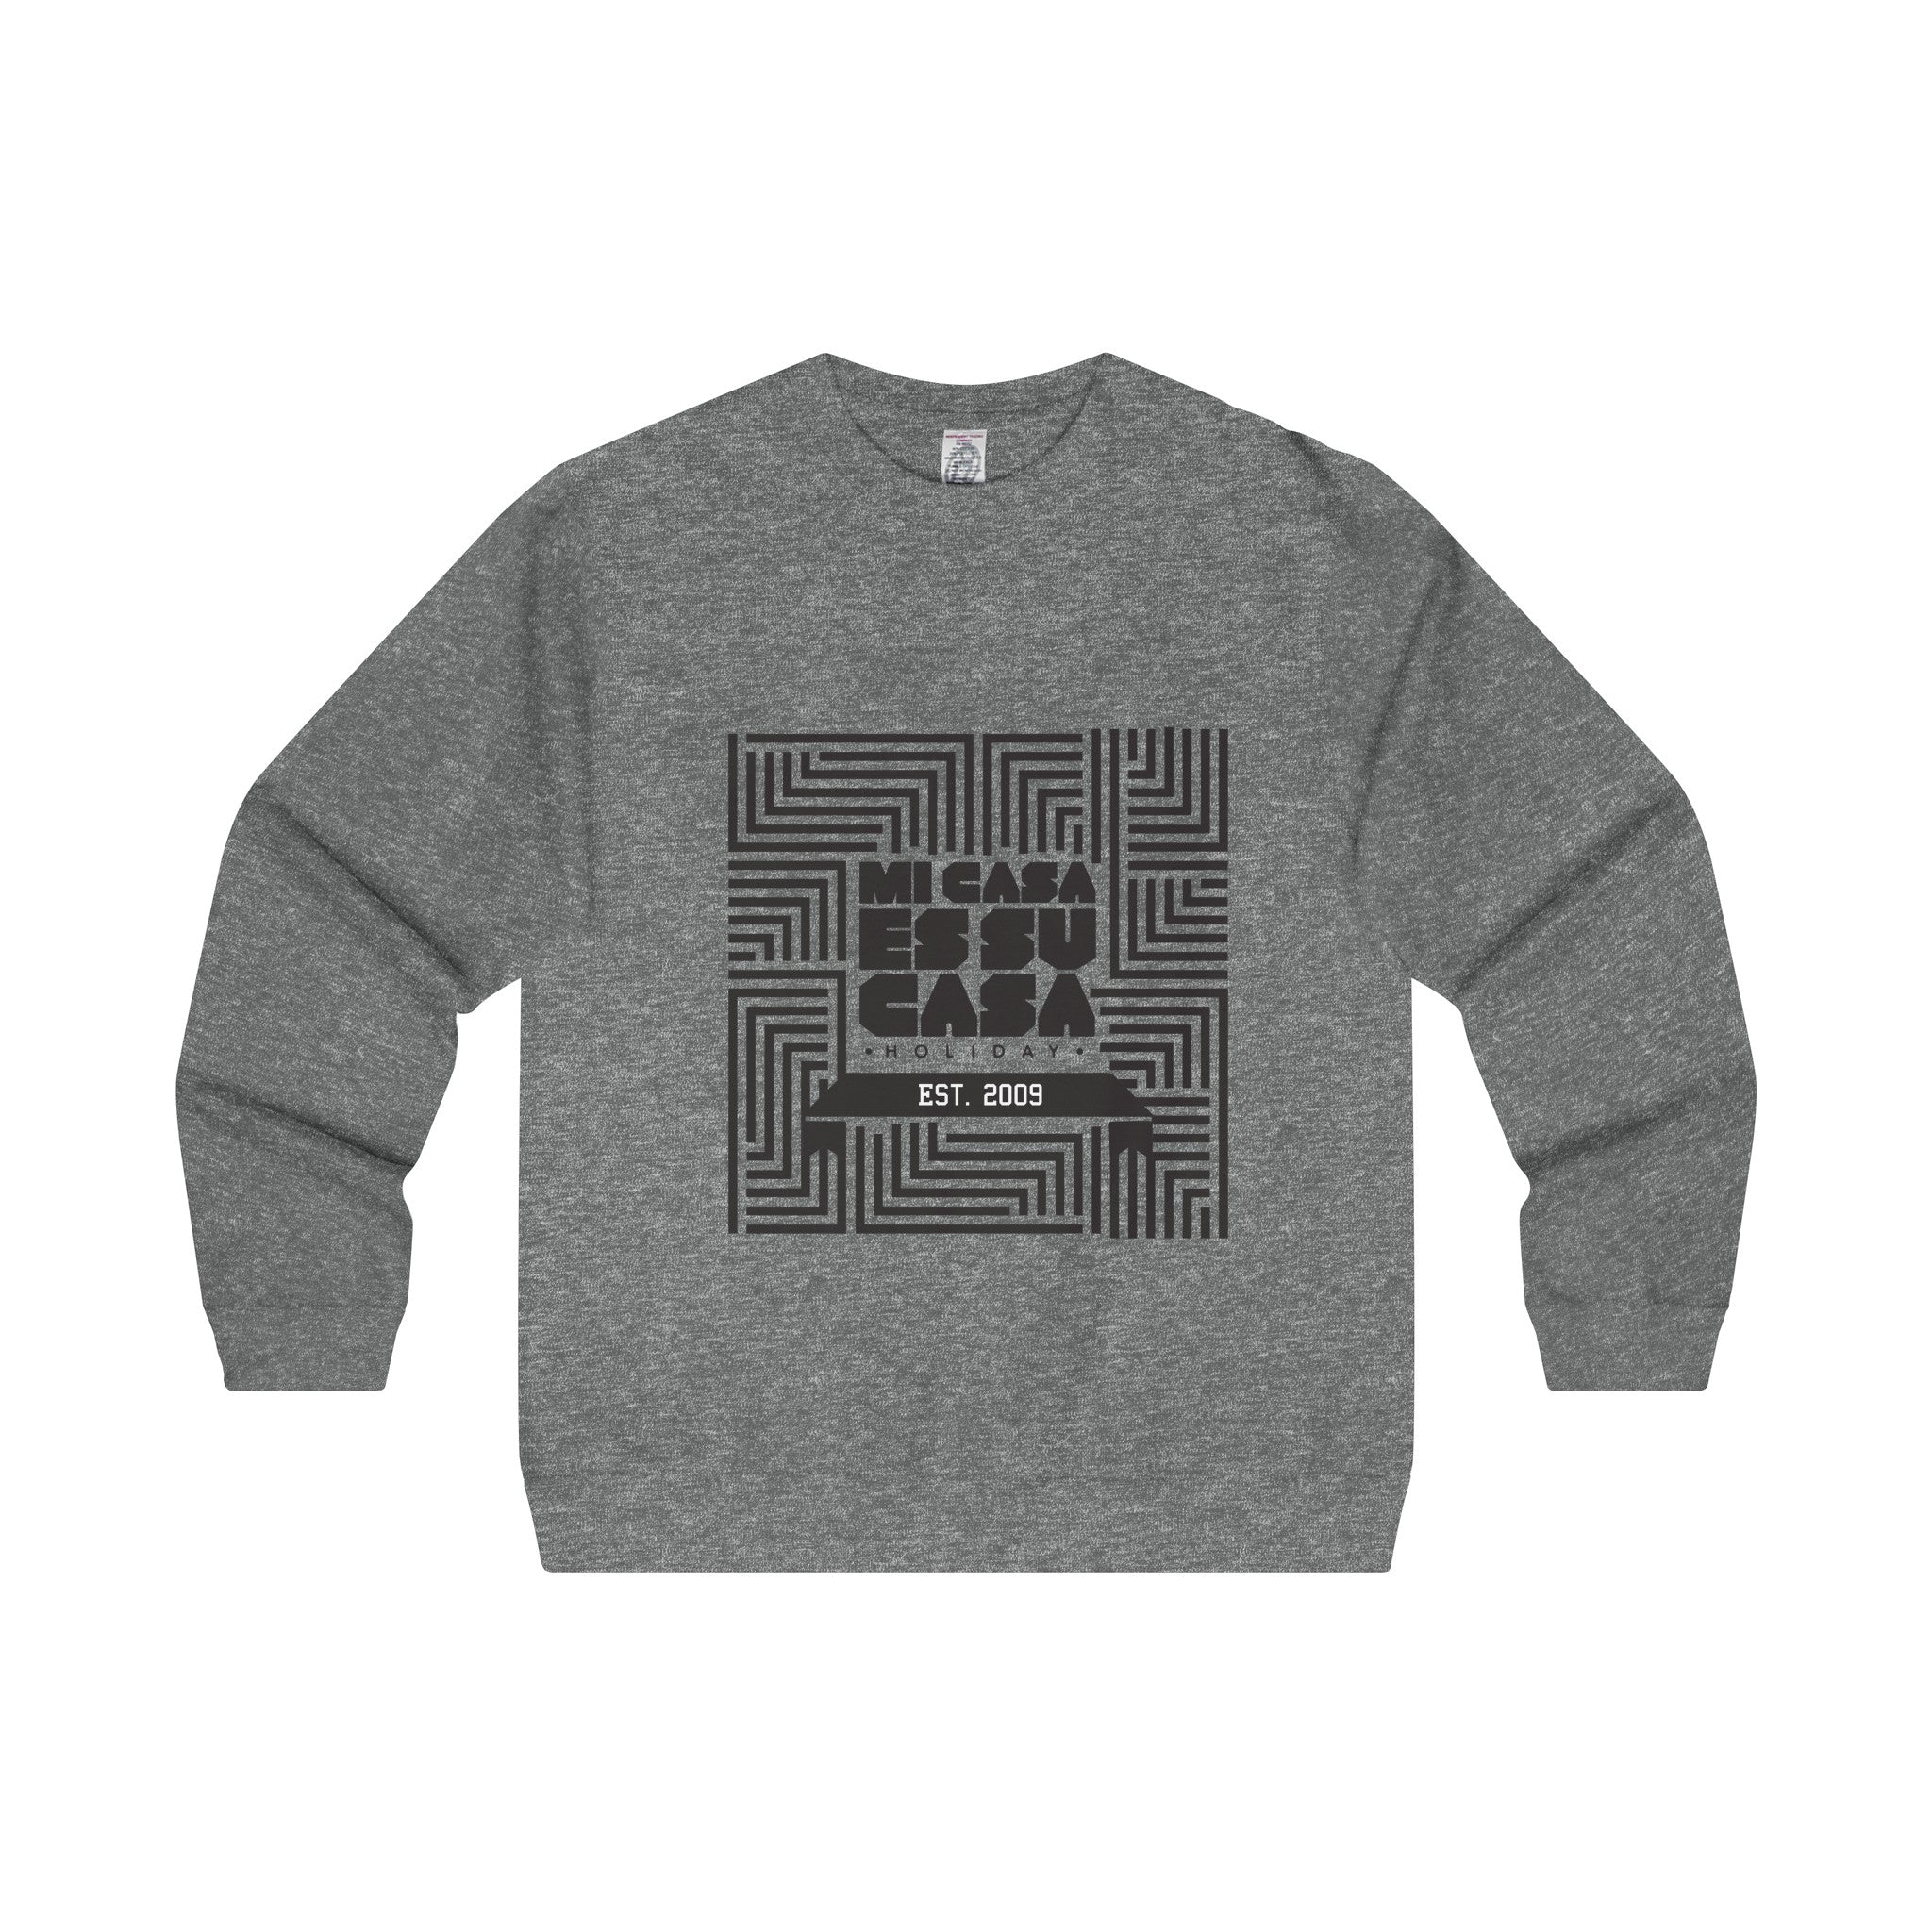 Men's Midweight Crewneck Sweatshirt